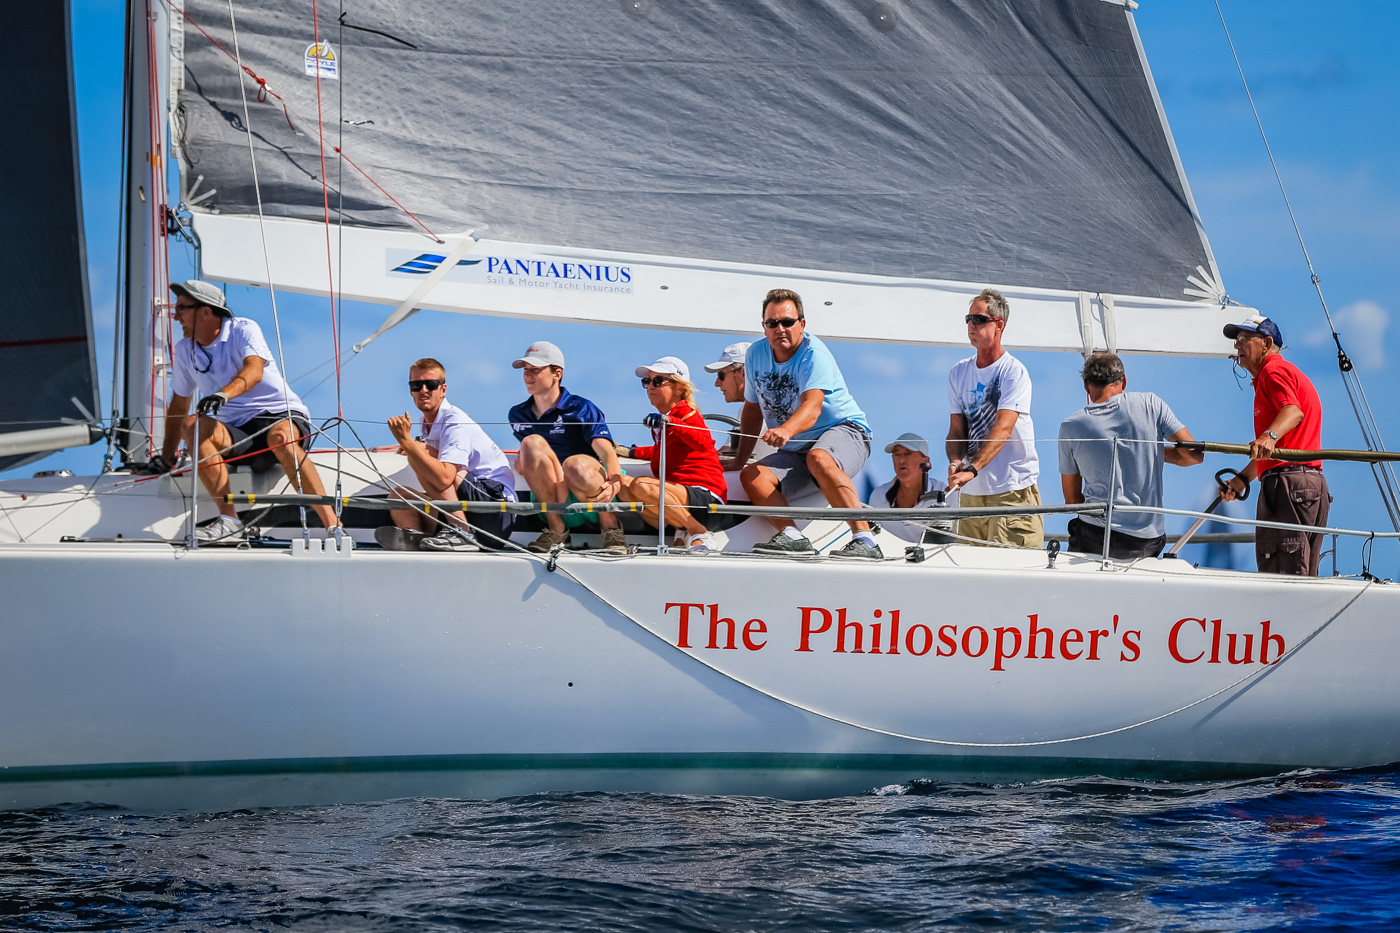 The Philosopher's Club wins the HMRI Cup. Photo Saltwater Images.